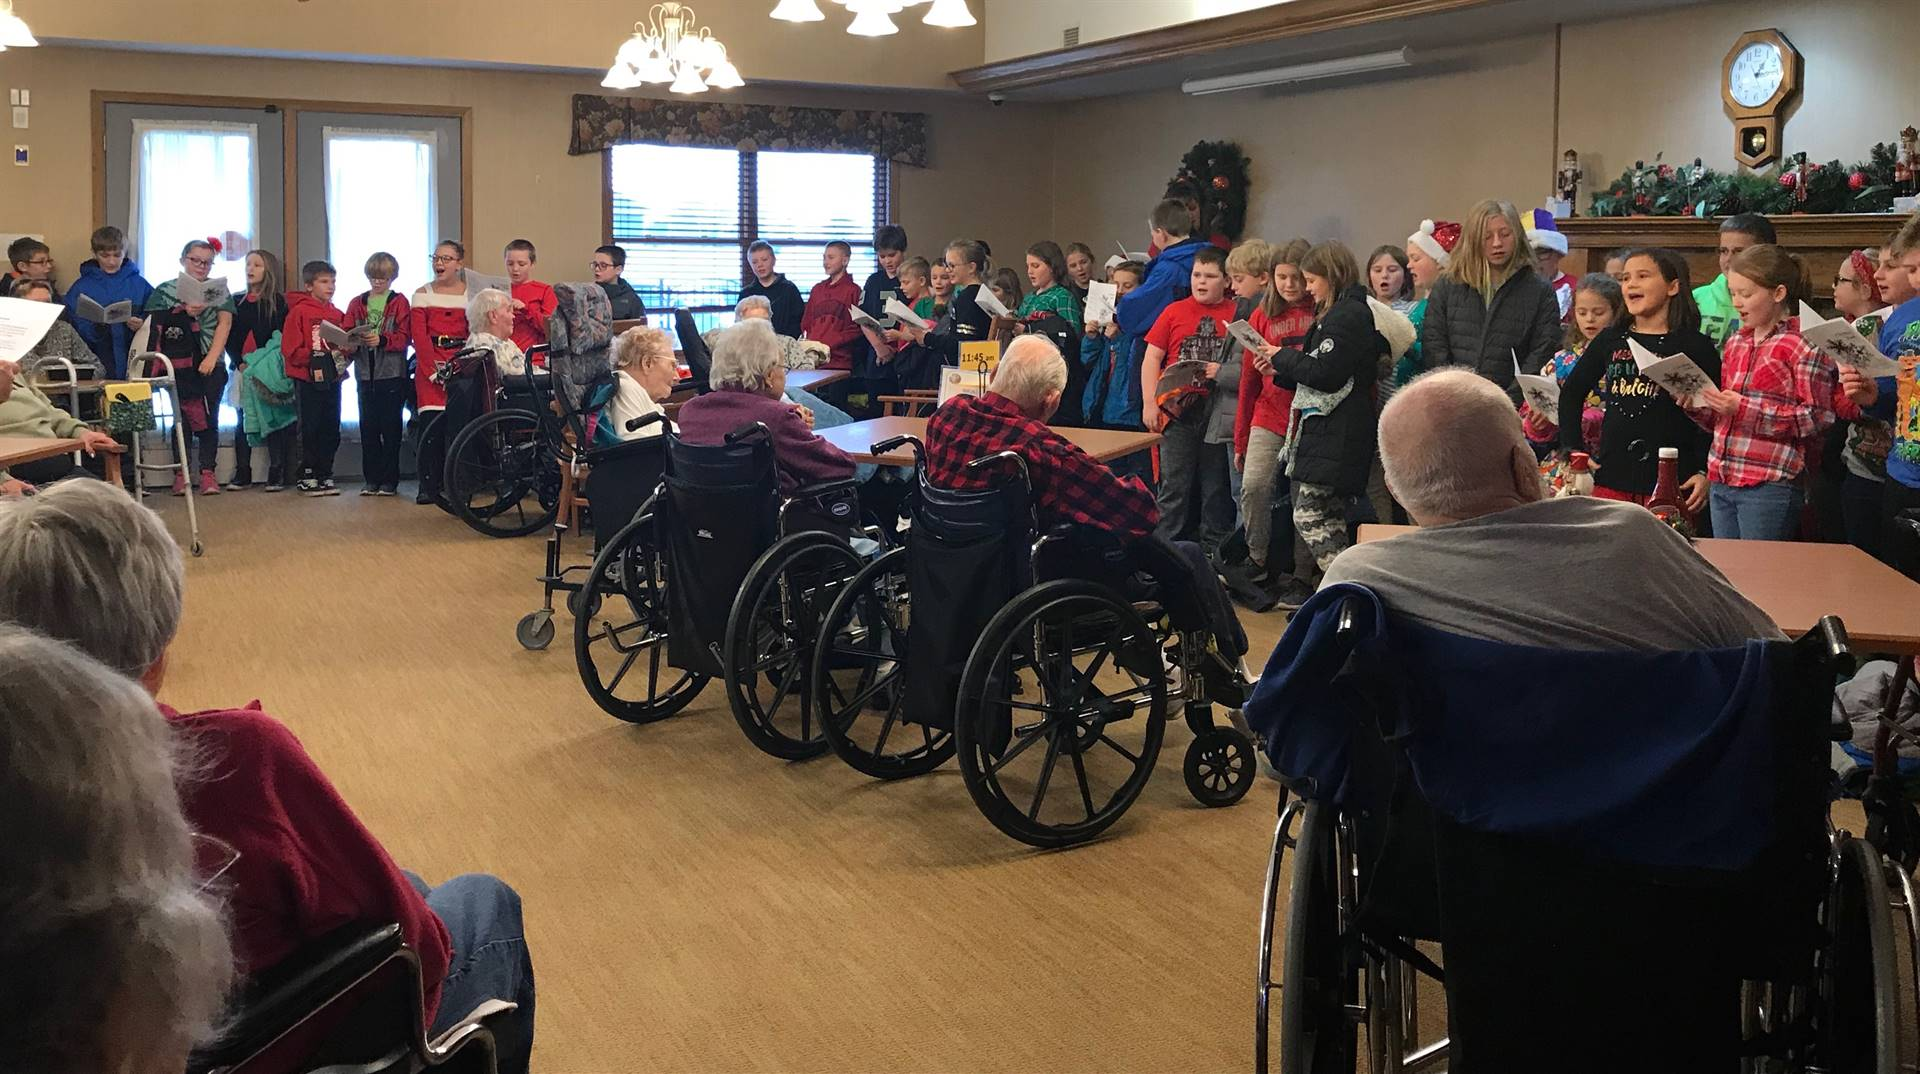 students singing Christmas carols at the local nursing home